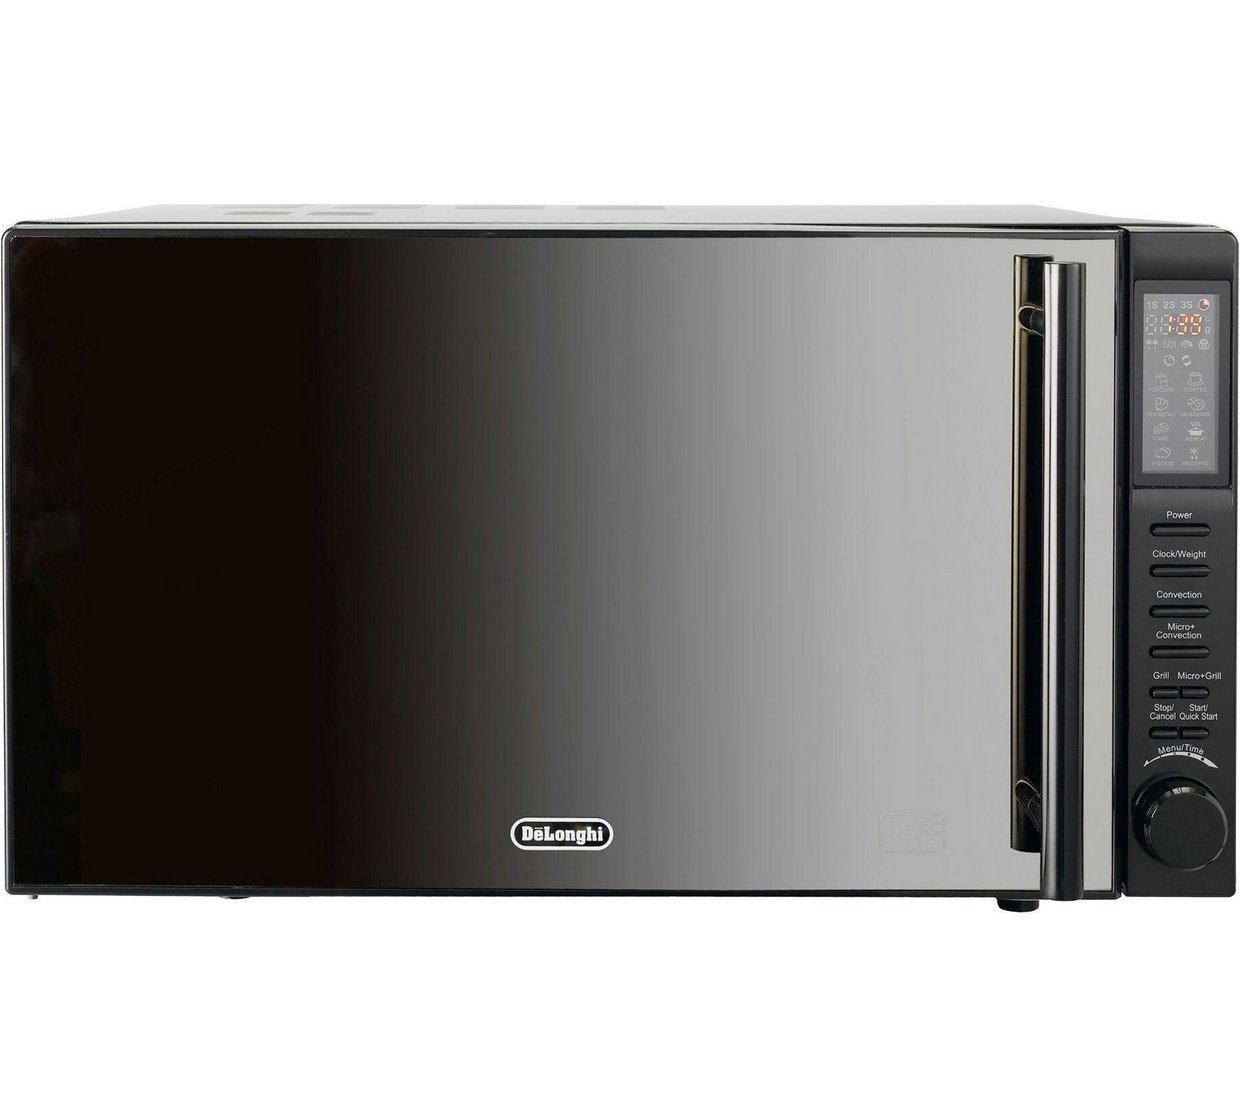 De'Longhi D90D25ESLRIII-B1A Combination Microwave Black